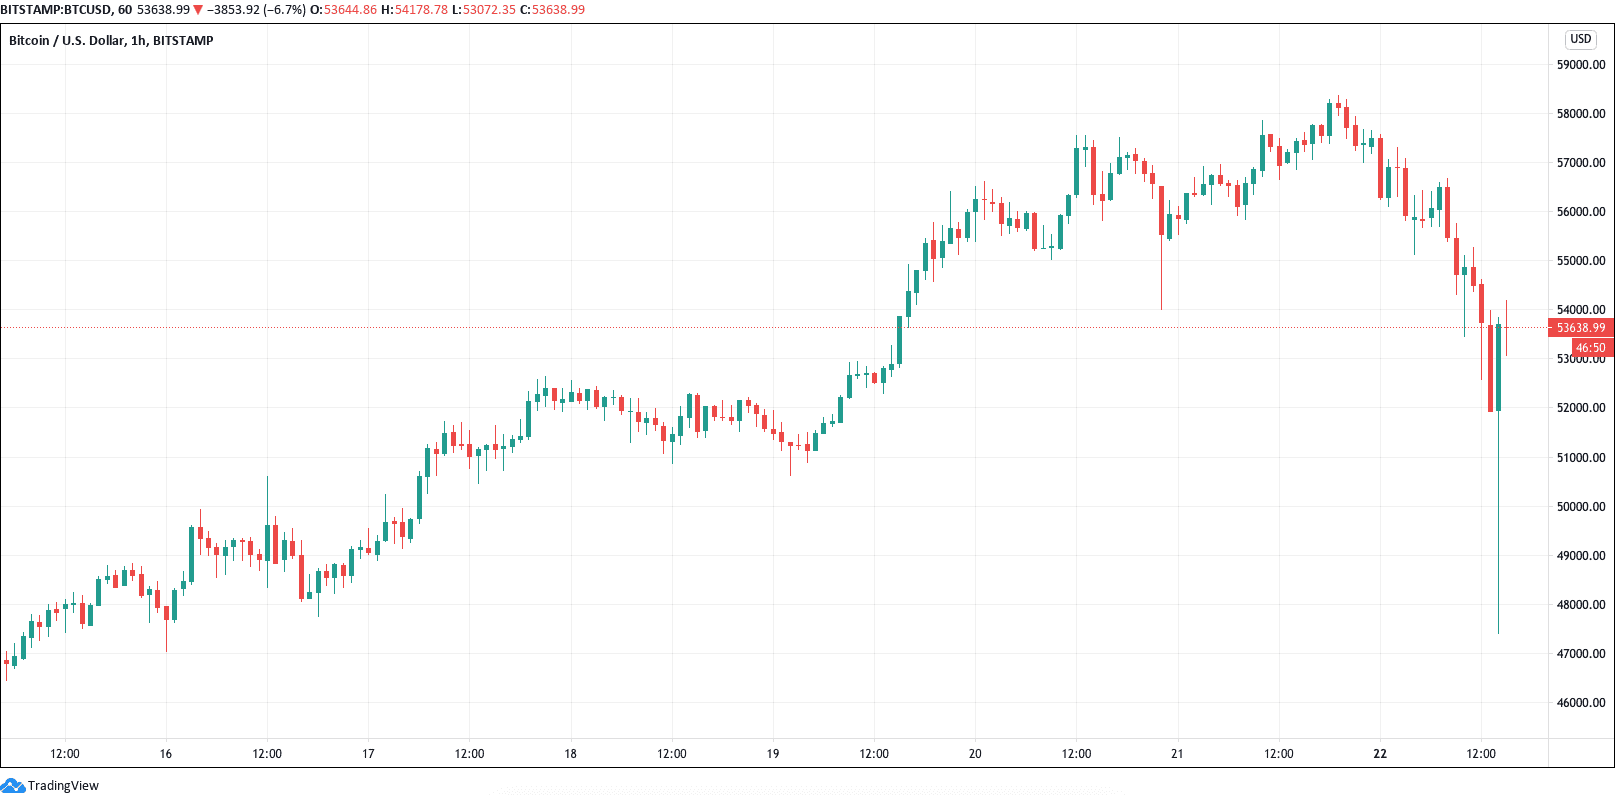 Bitcoin prints biggest per hour candle in history after BTC rebounds strongly to $54K.